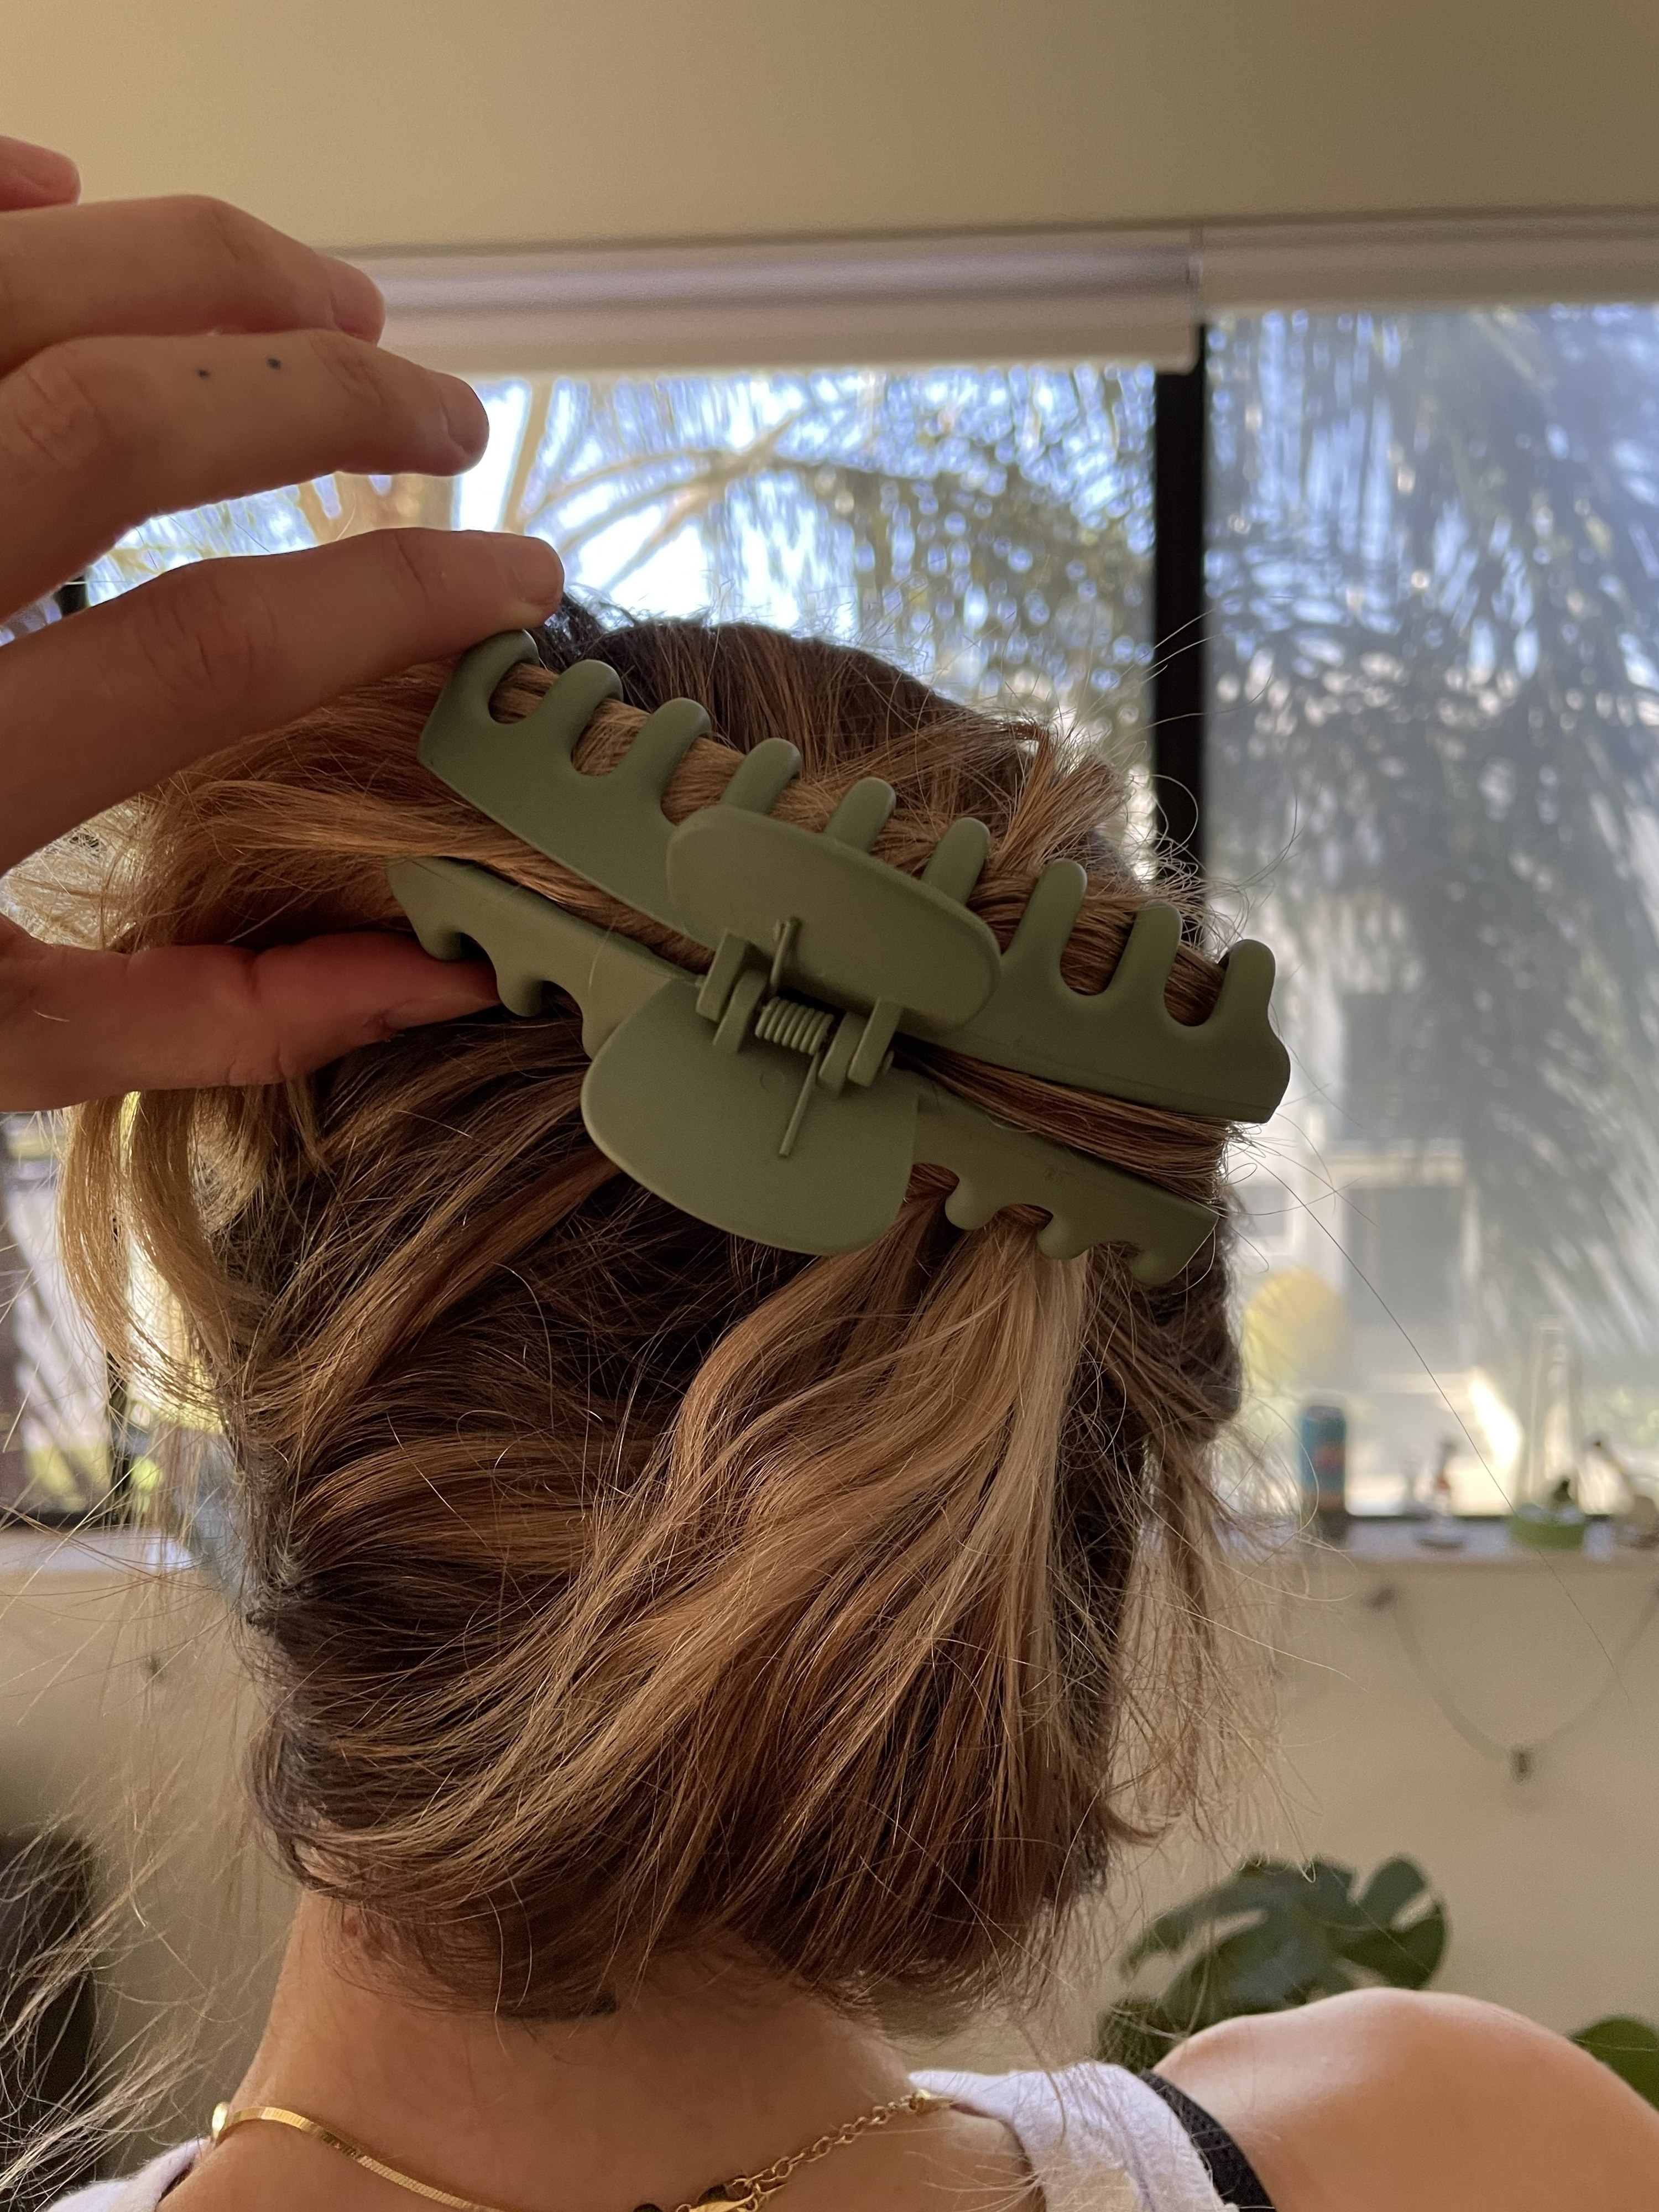 An image of the back of the author's head with her hair clipped with one of the big hair clips